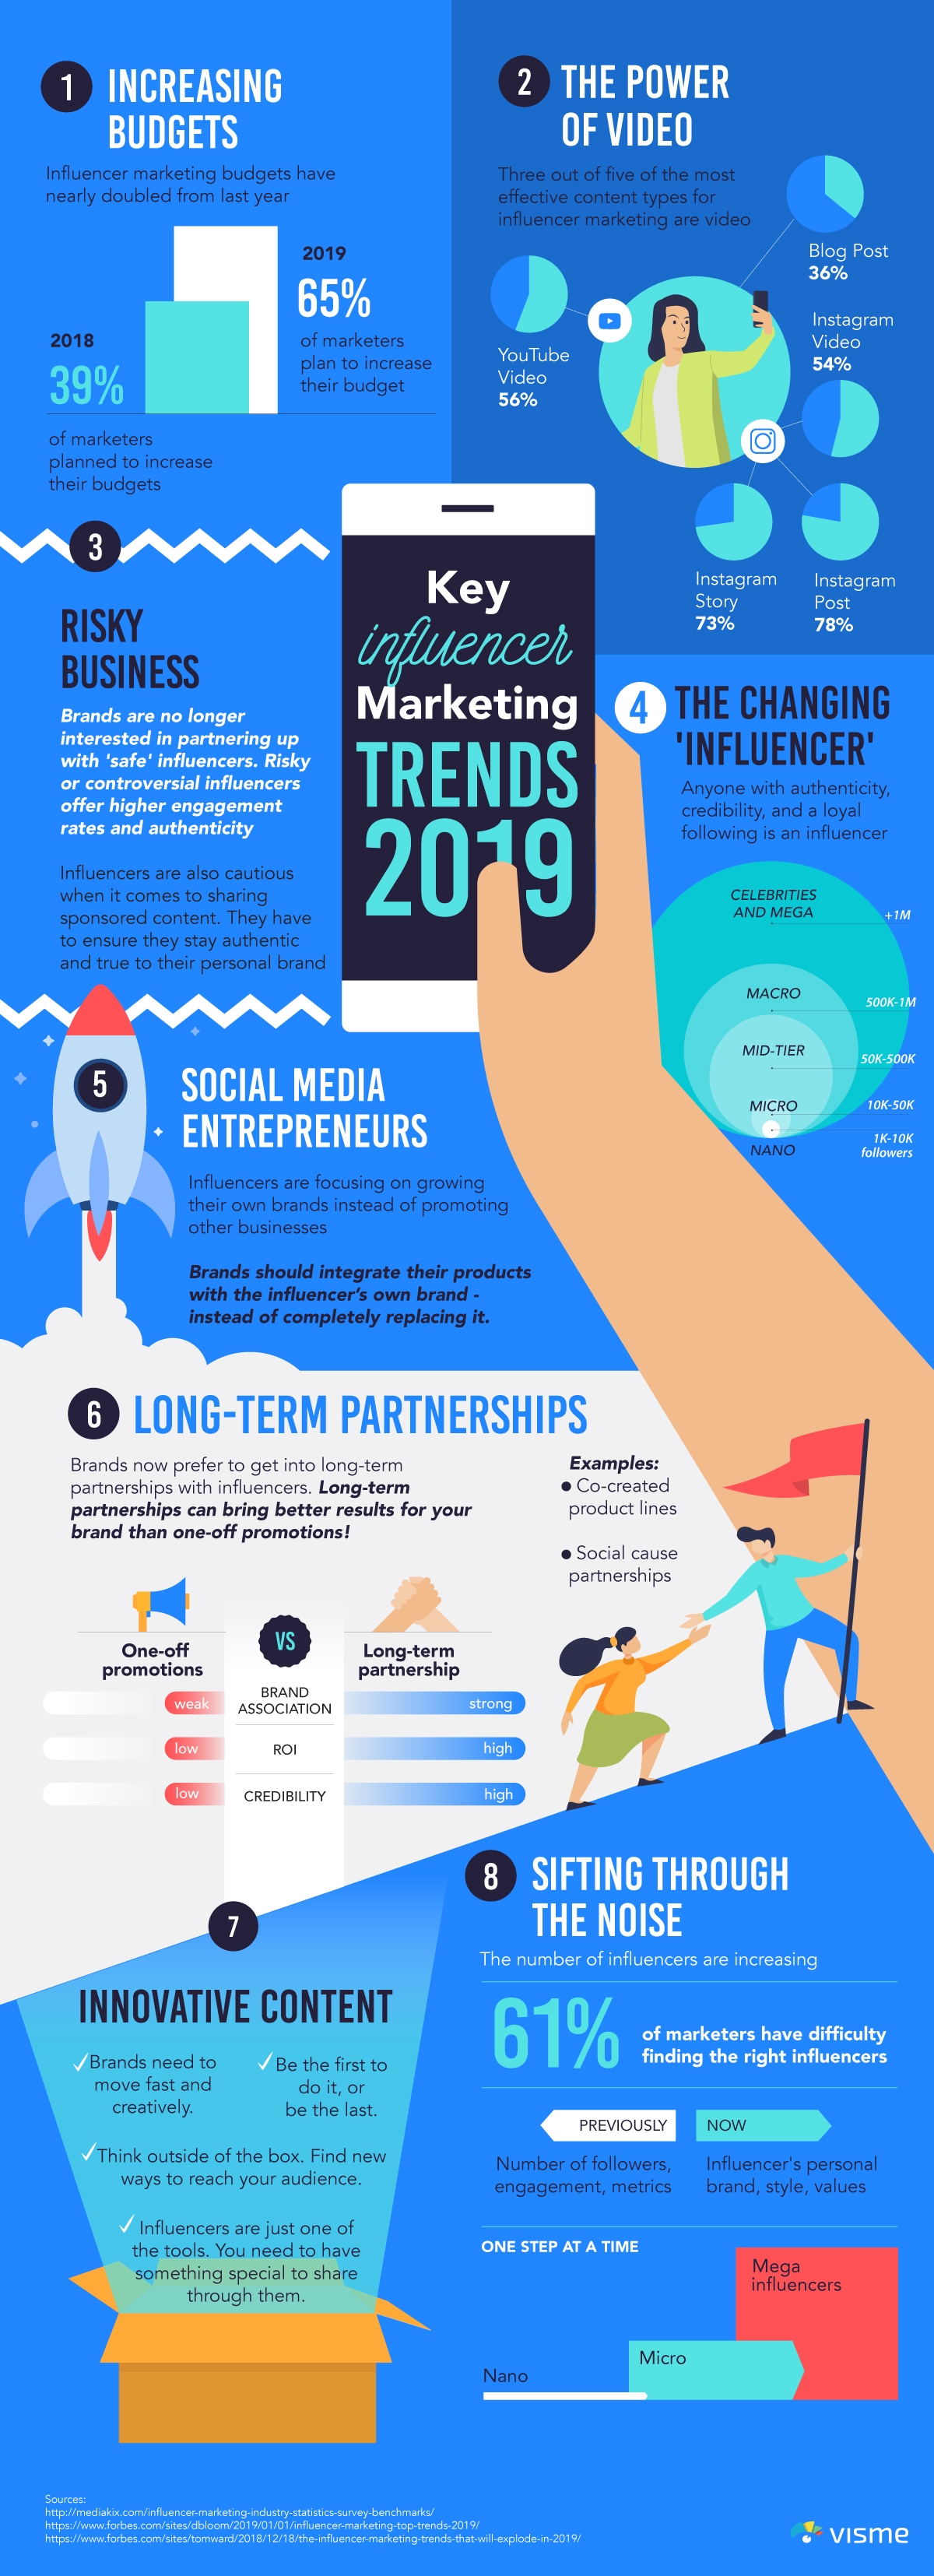 social-media-influencers-influencer-marketing-trends-2019-infographic